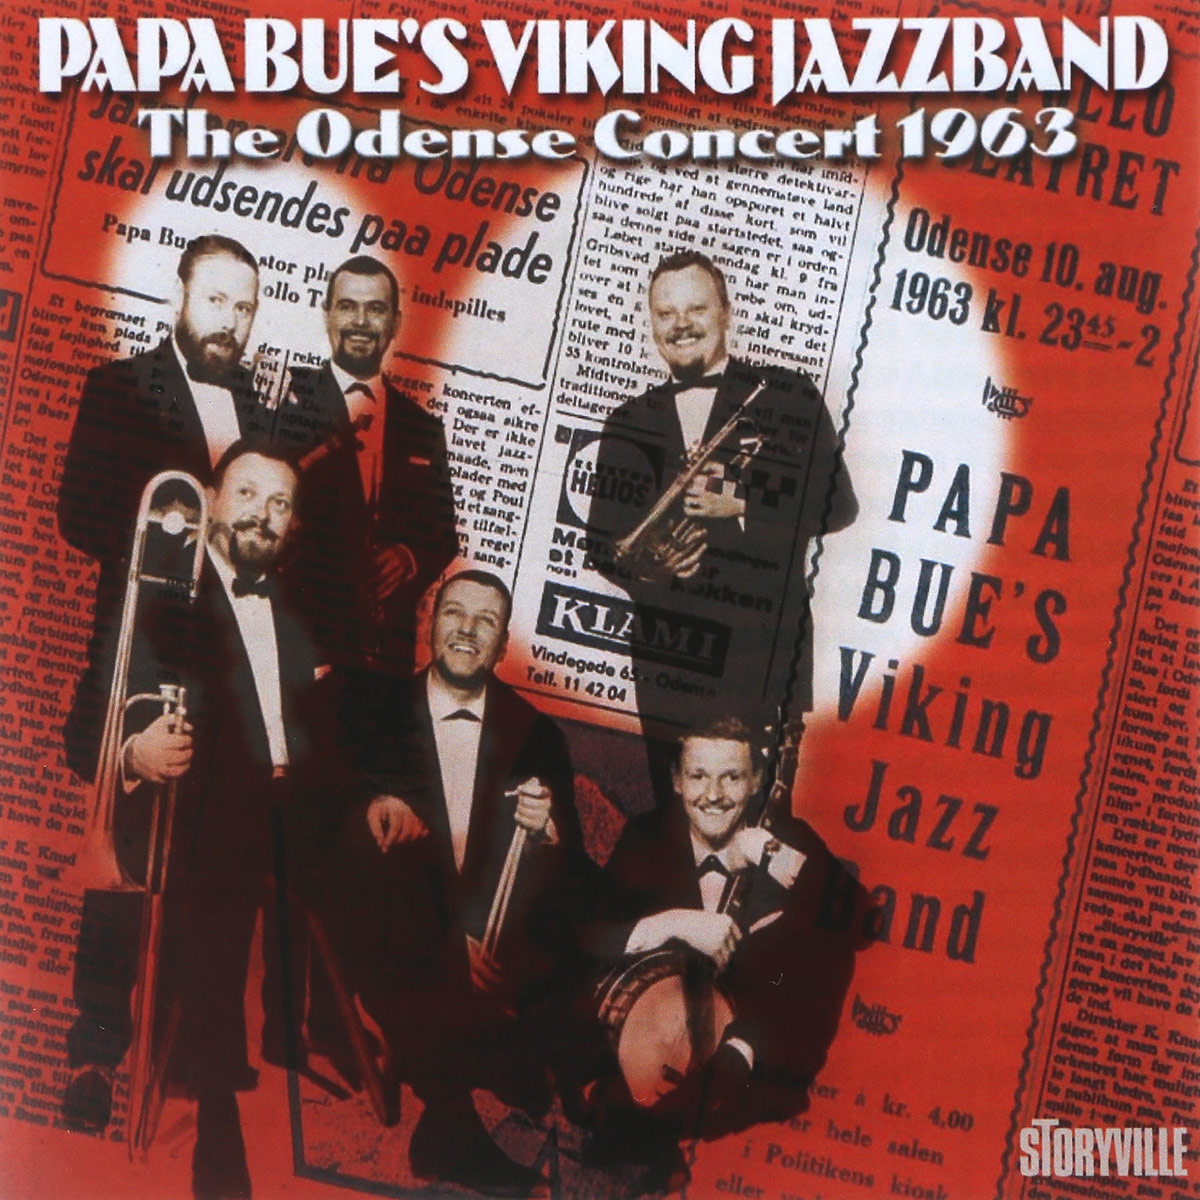 Papa Bue's Viking Jazz Band Papa Bue's Viking Jazz Band. The Odense Concert 1963